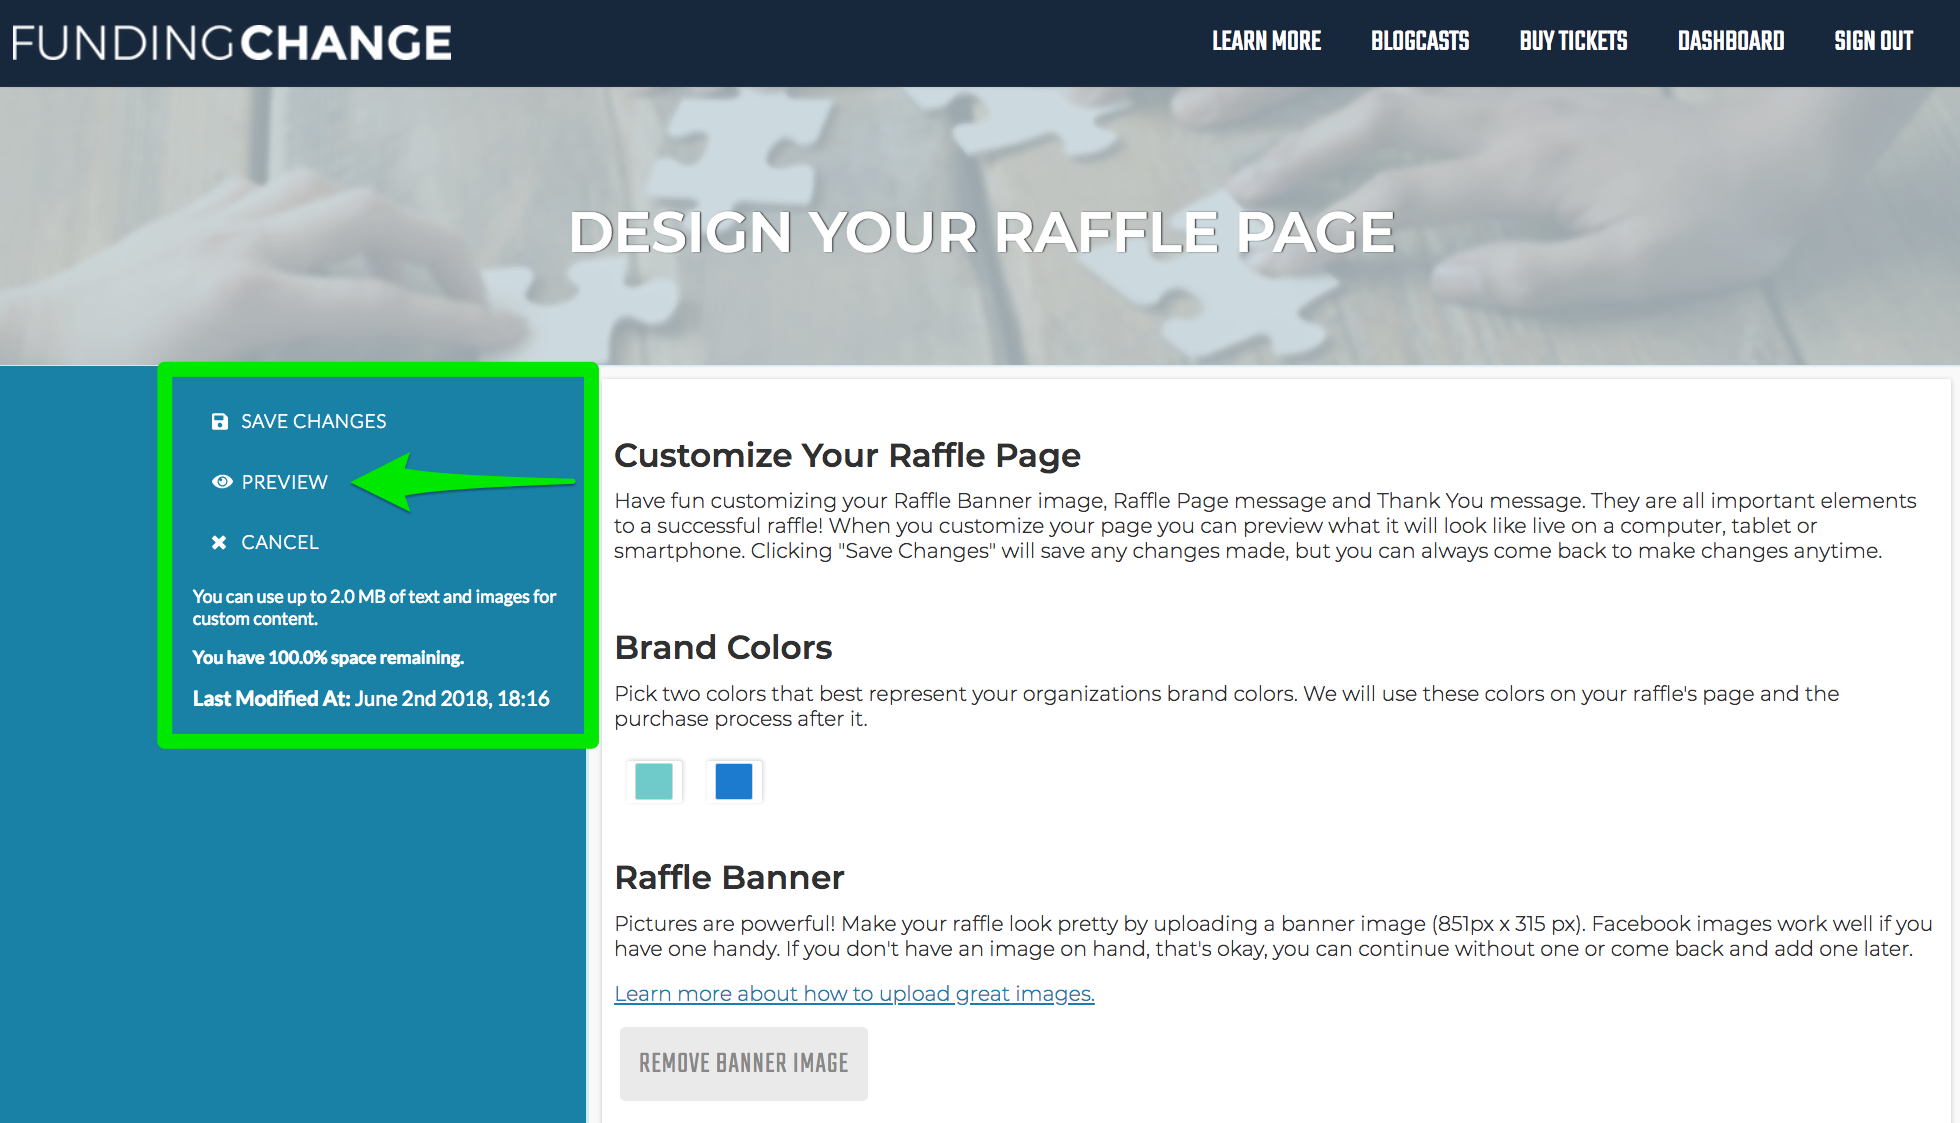 Design_Your_Raffle_Page.png